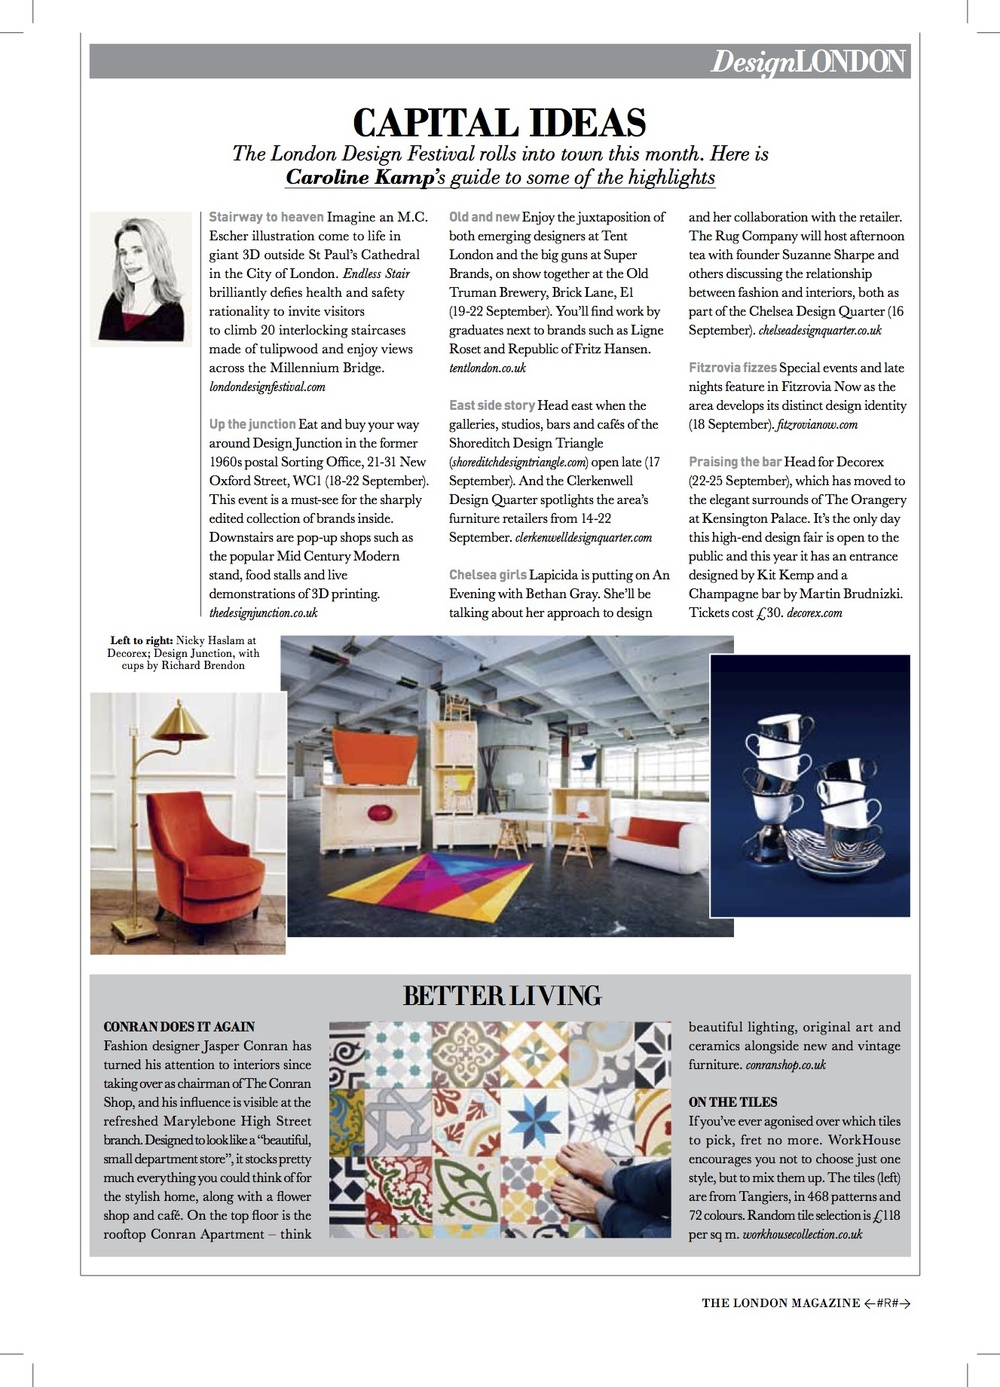 In the September issue of The London Magazine I talk about what to see at the London Design Festival; the refreshed Conran Shop in Marylebone with Jasper at the helm; and gorgeous patterned tiles from WorkHouse. Click here to read online.